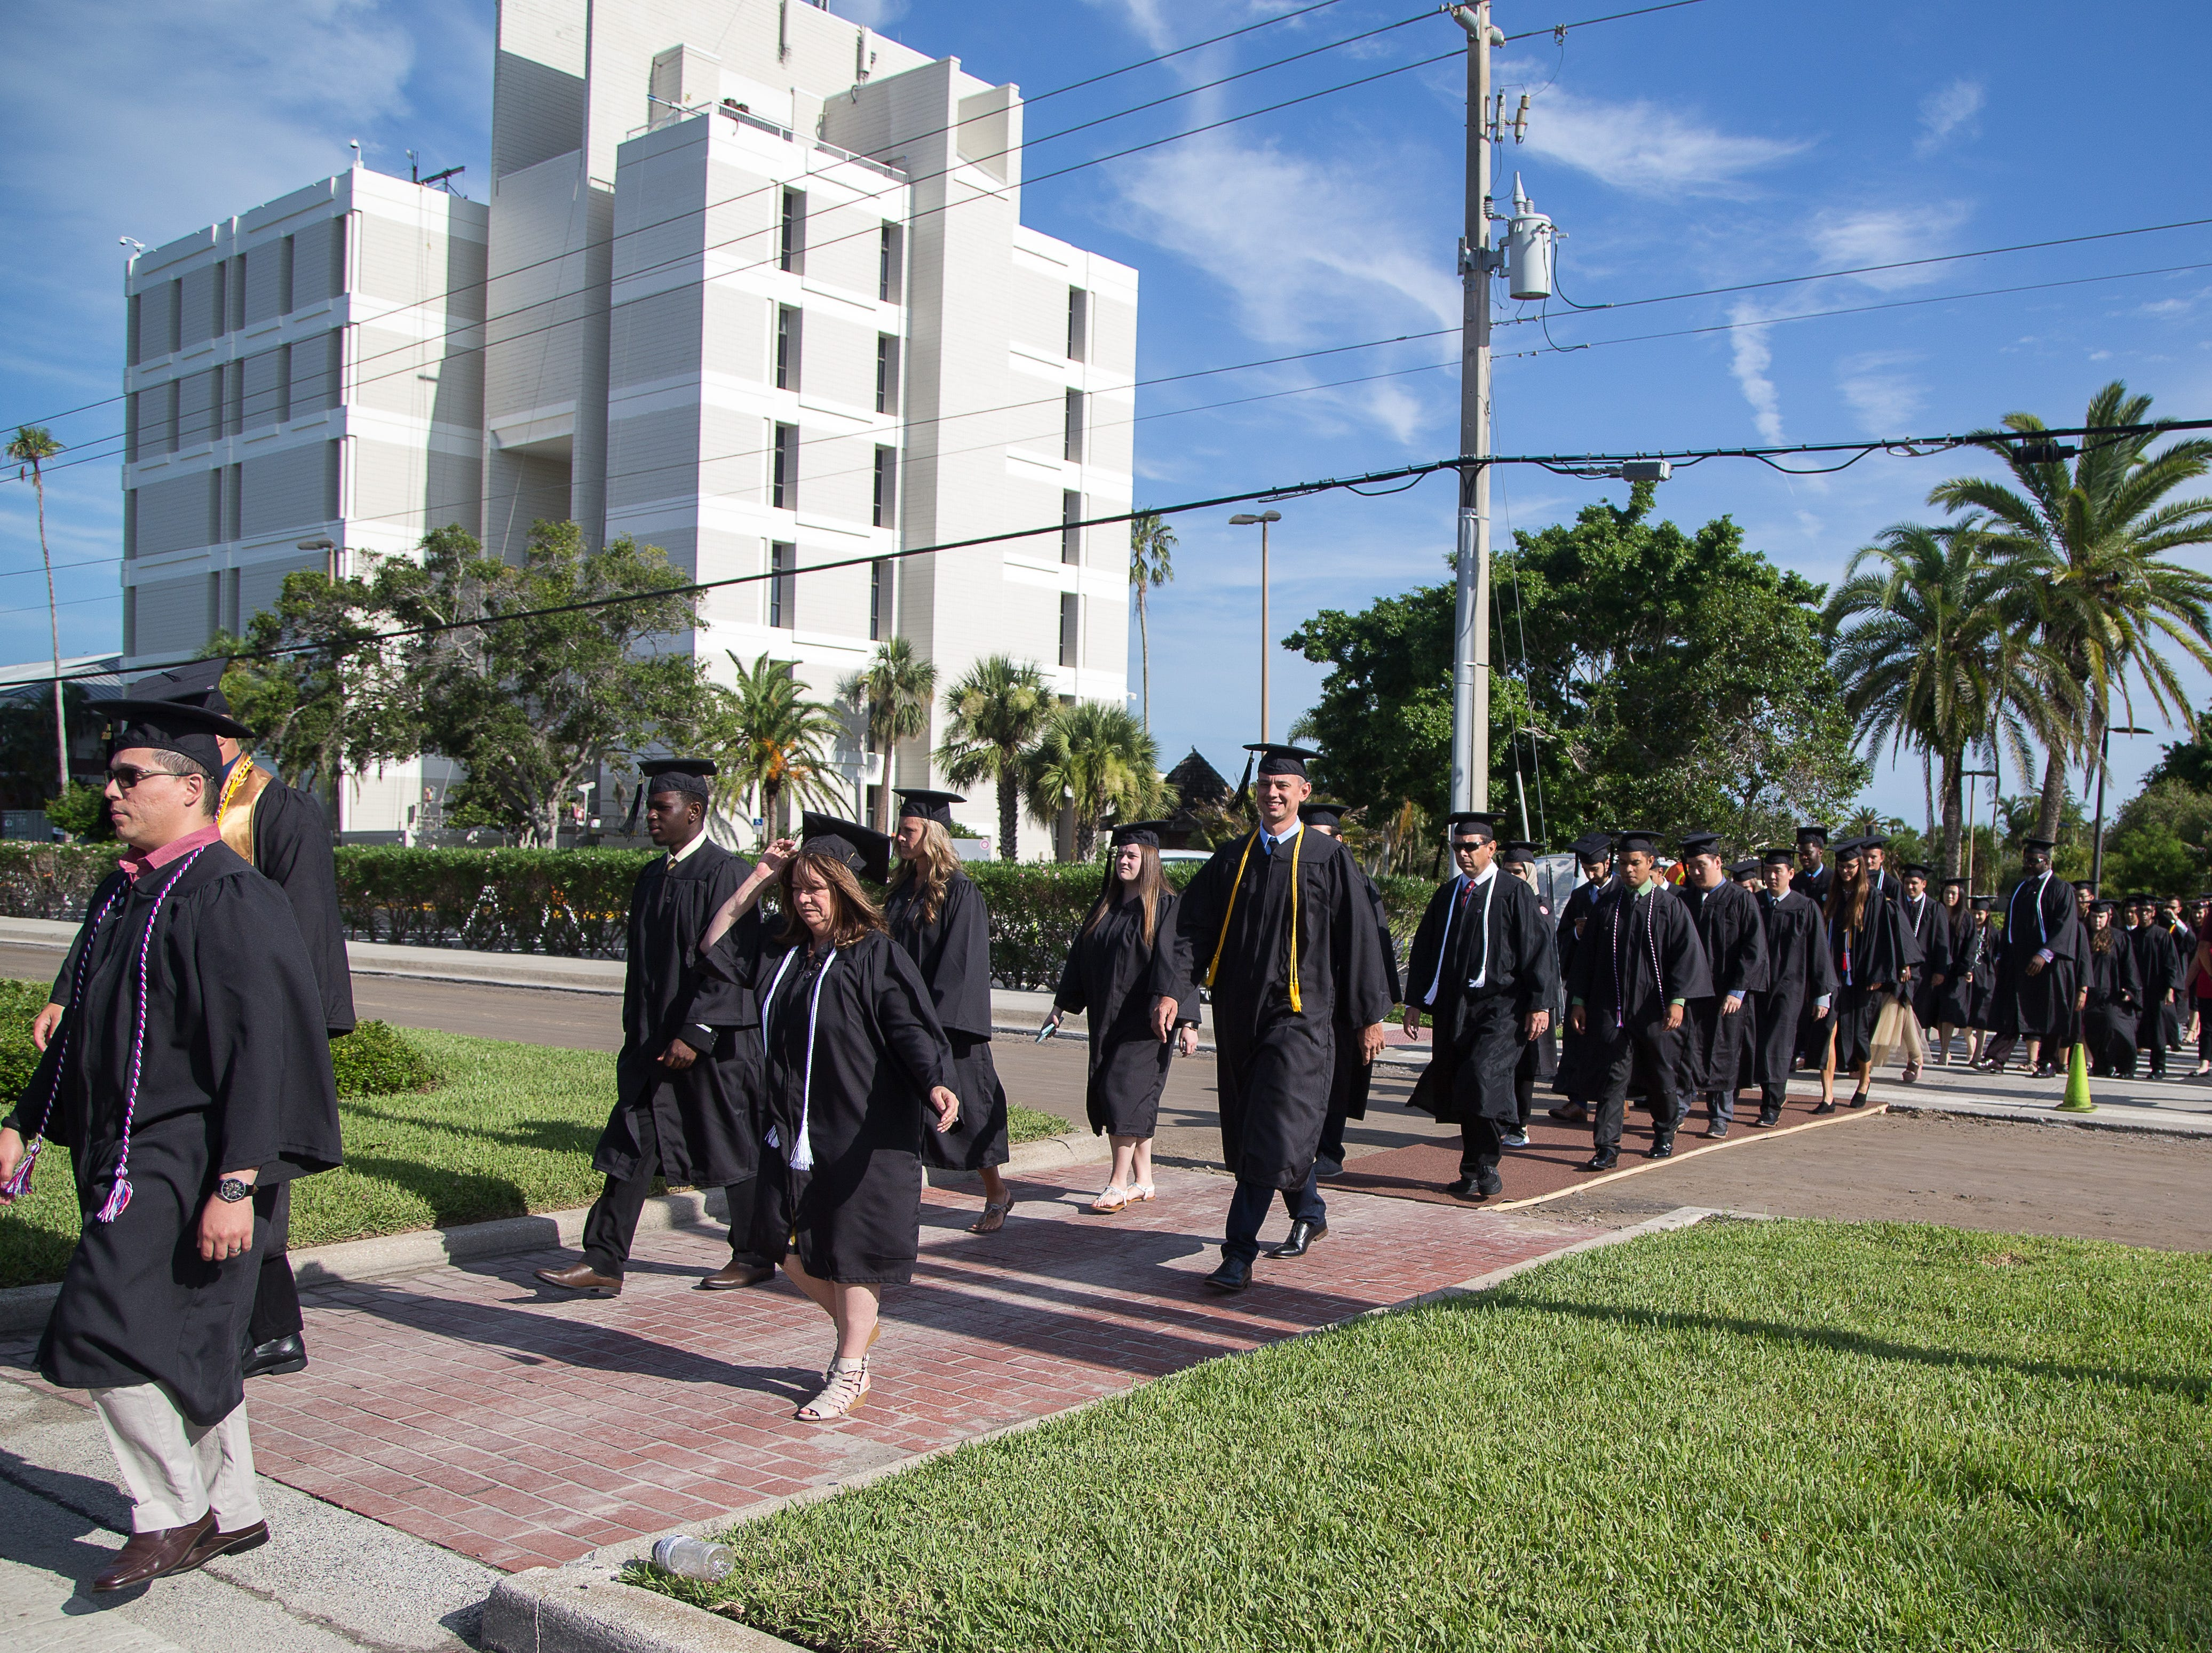 Florida Tech bestowed more than 740 degrees for students from the main campus in Melbourne, off-site locations and online programs, with about 300 participating in Saturday's ceremony. Students hailed from 33 U.S. states and 37 countries.